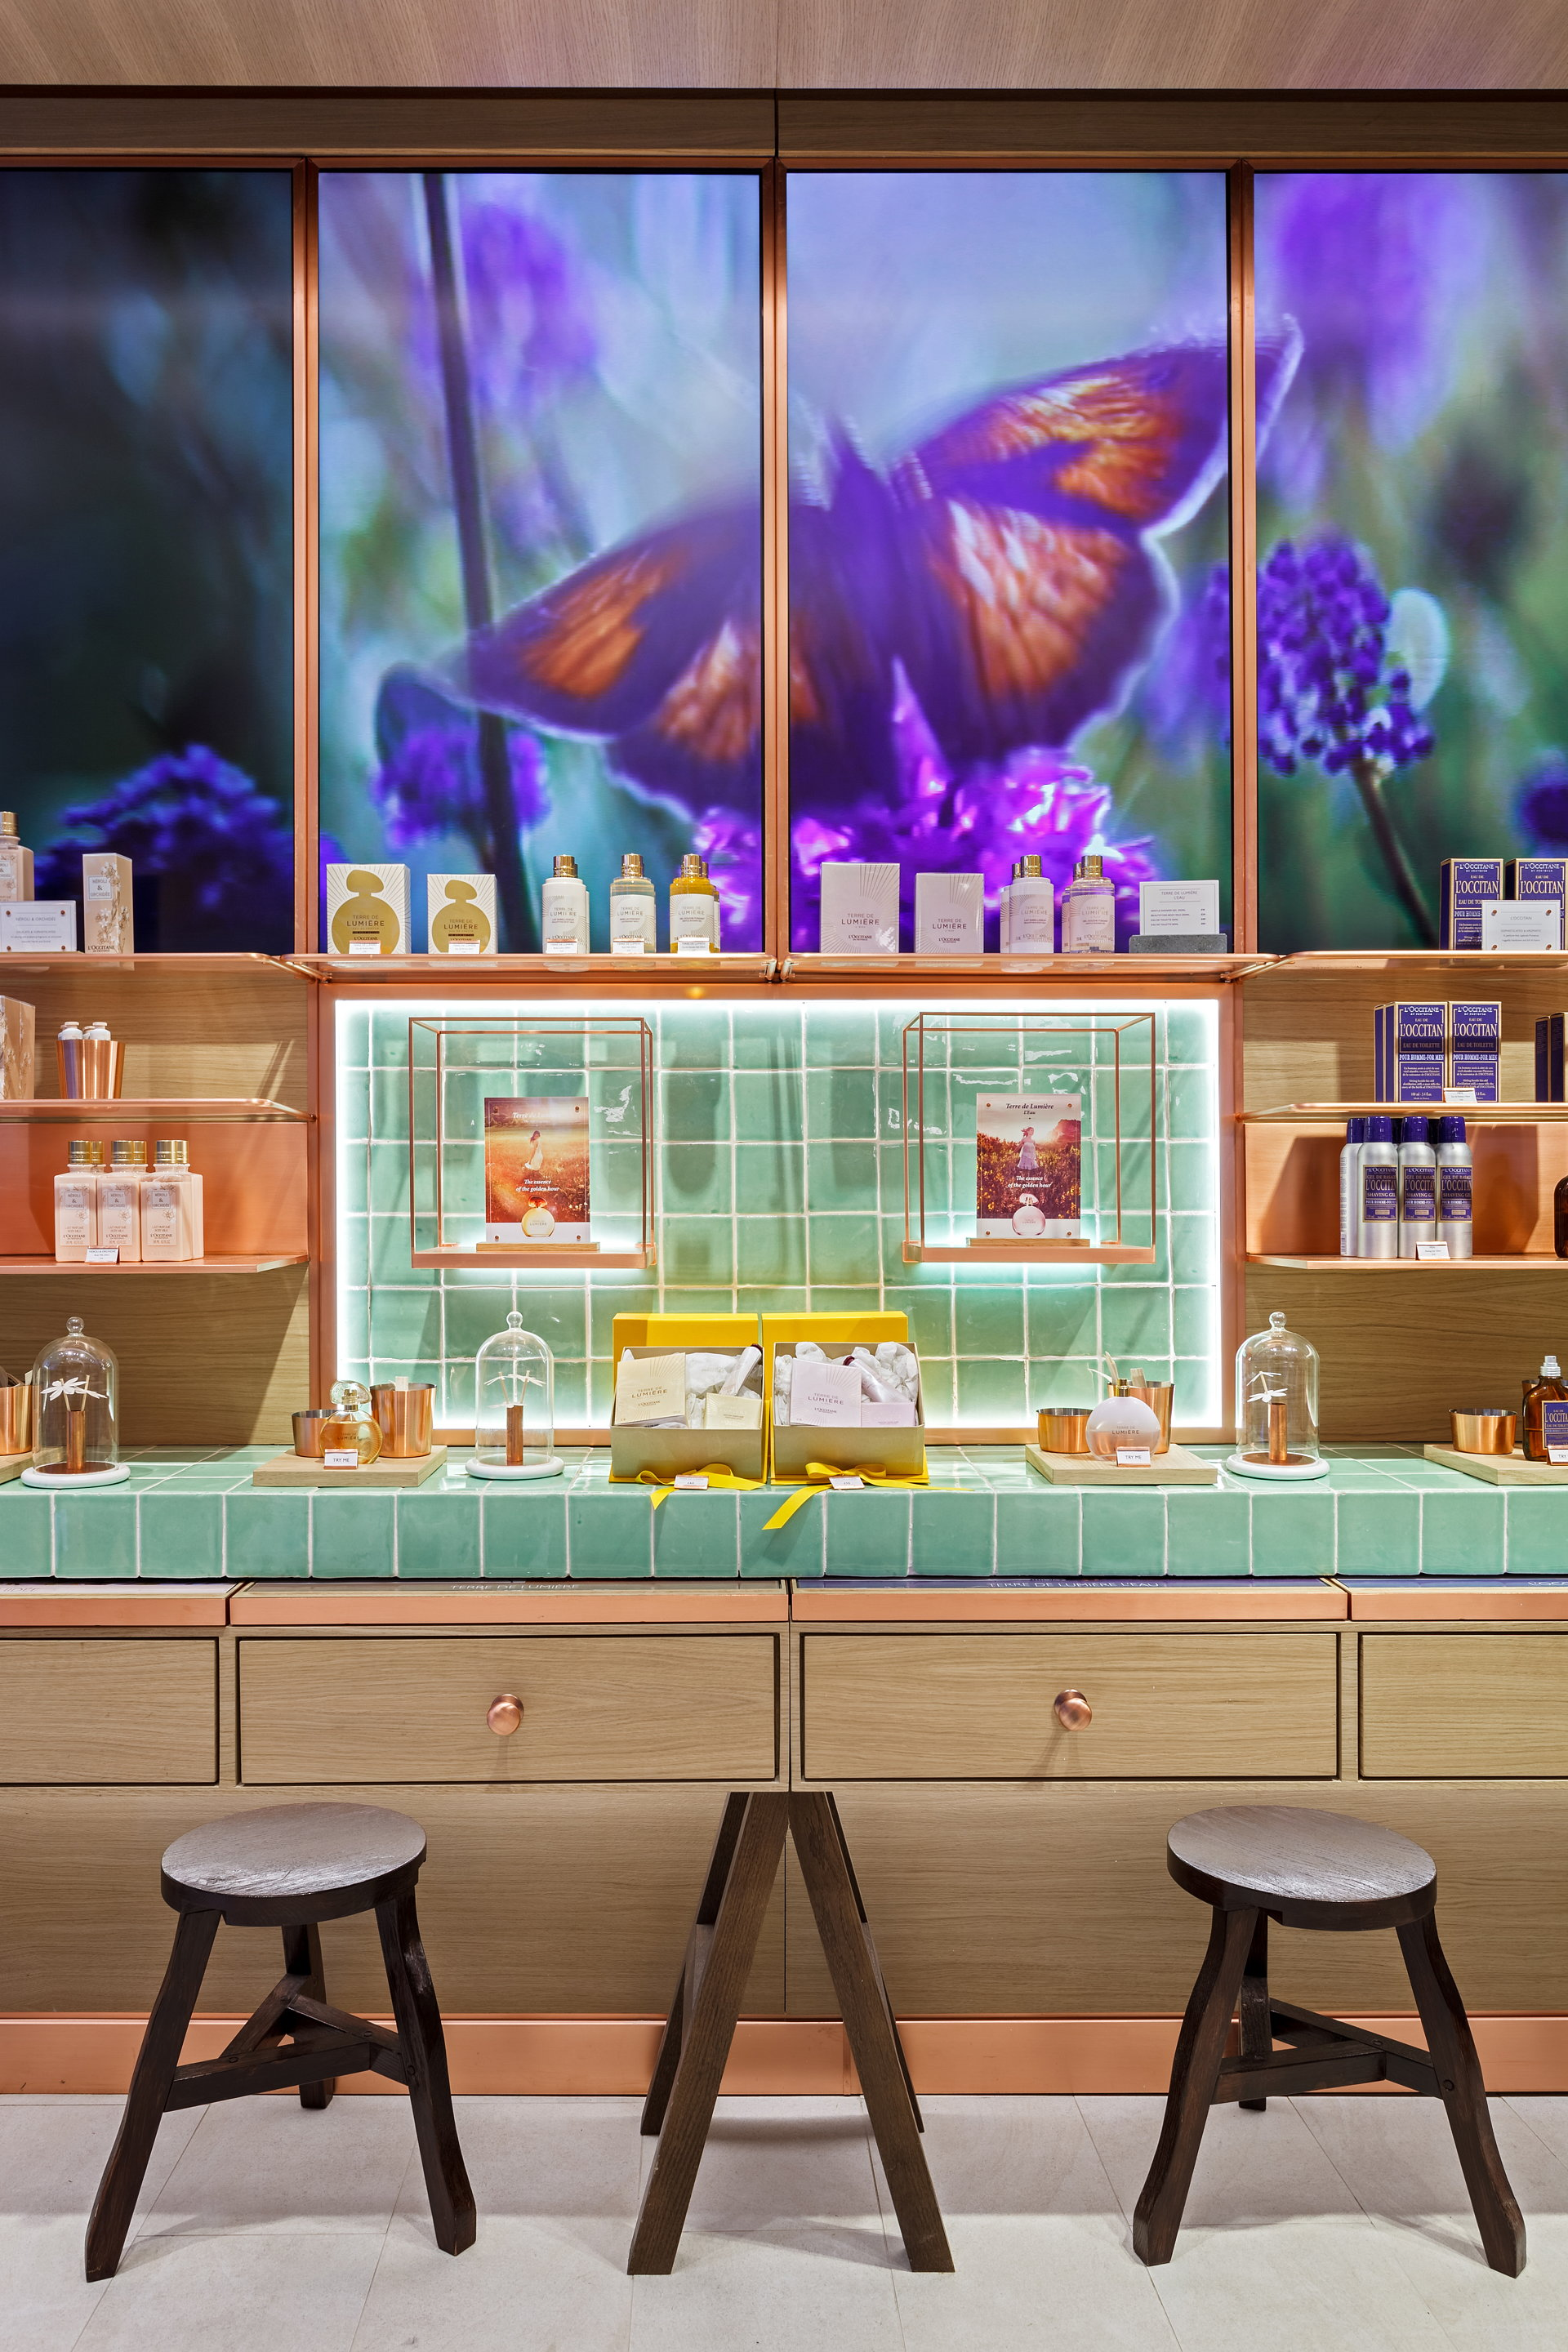 LOCCITANE London Flagship Store